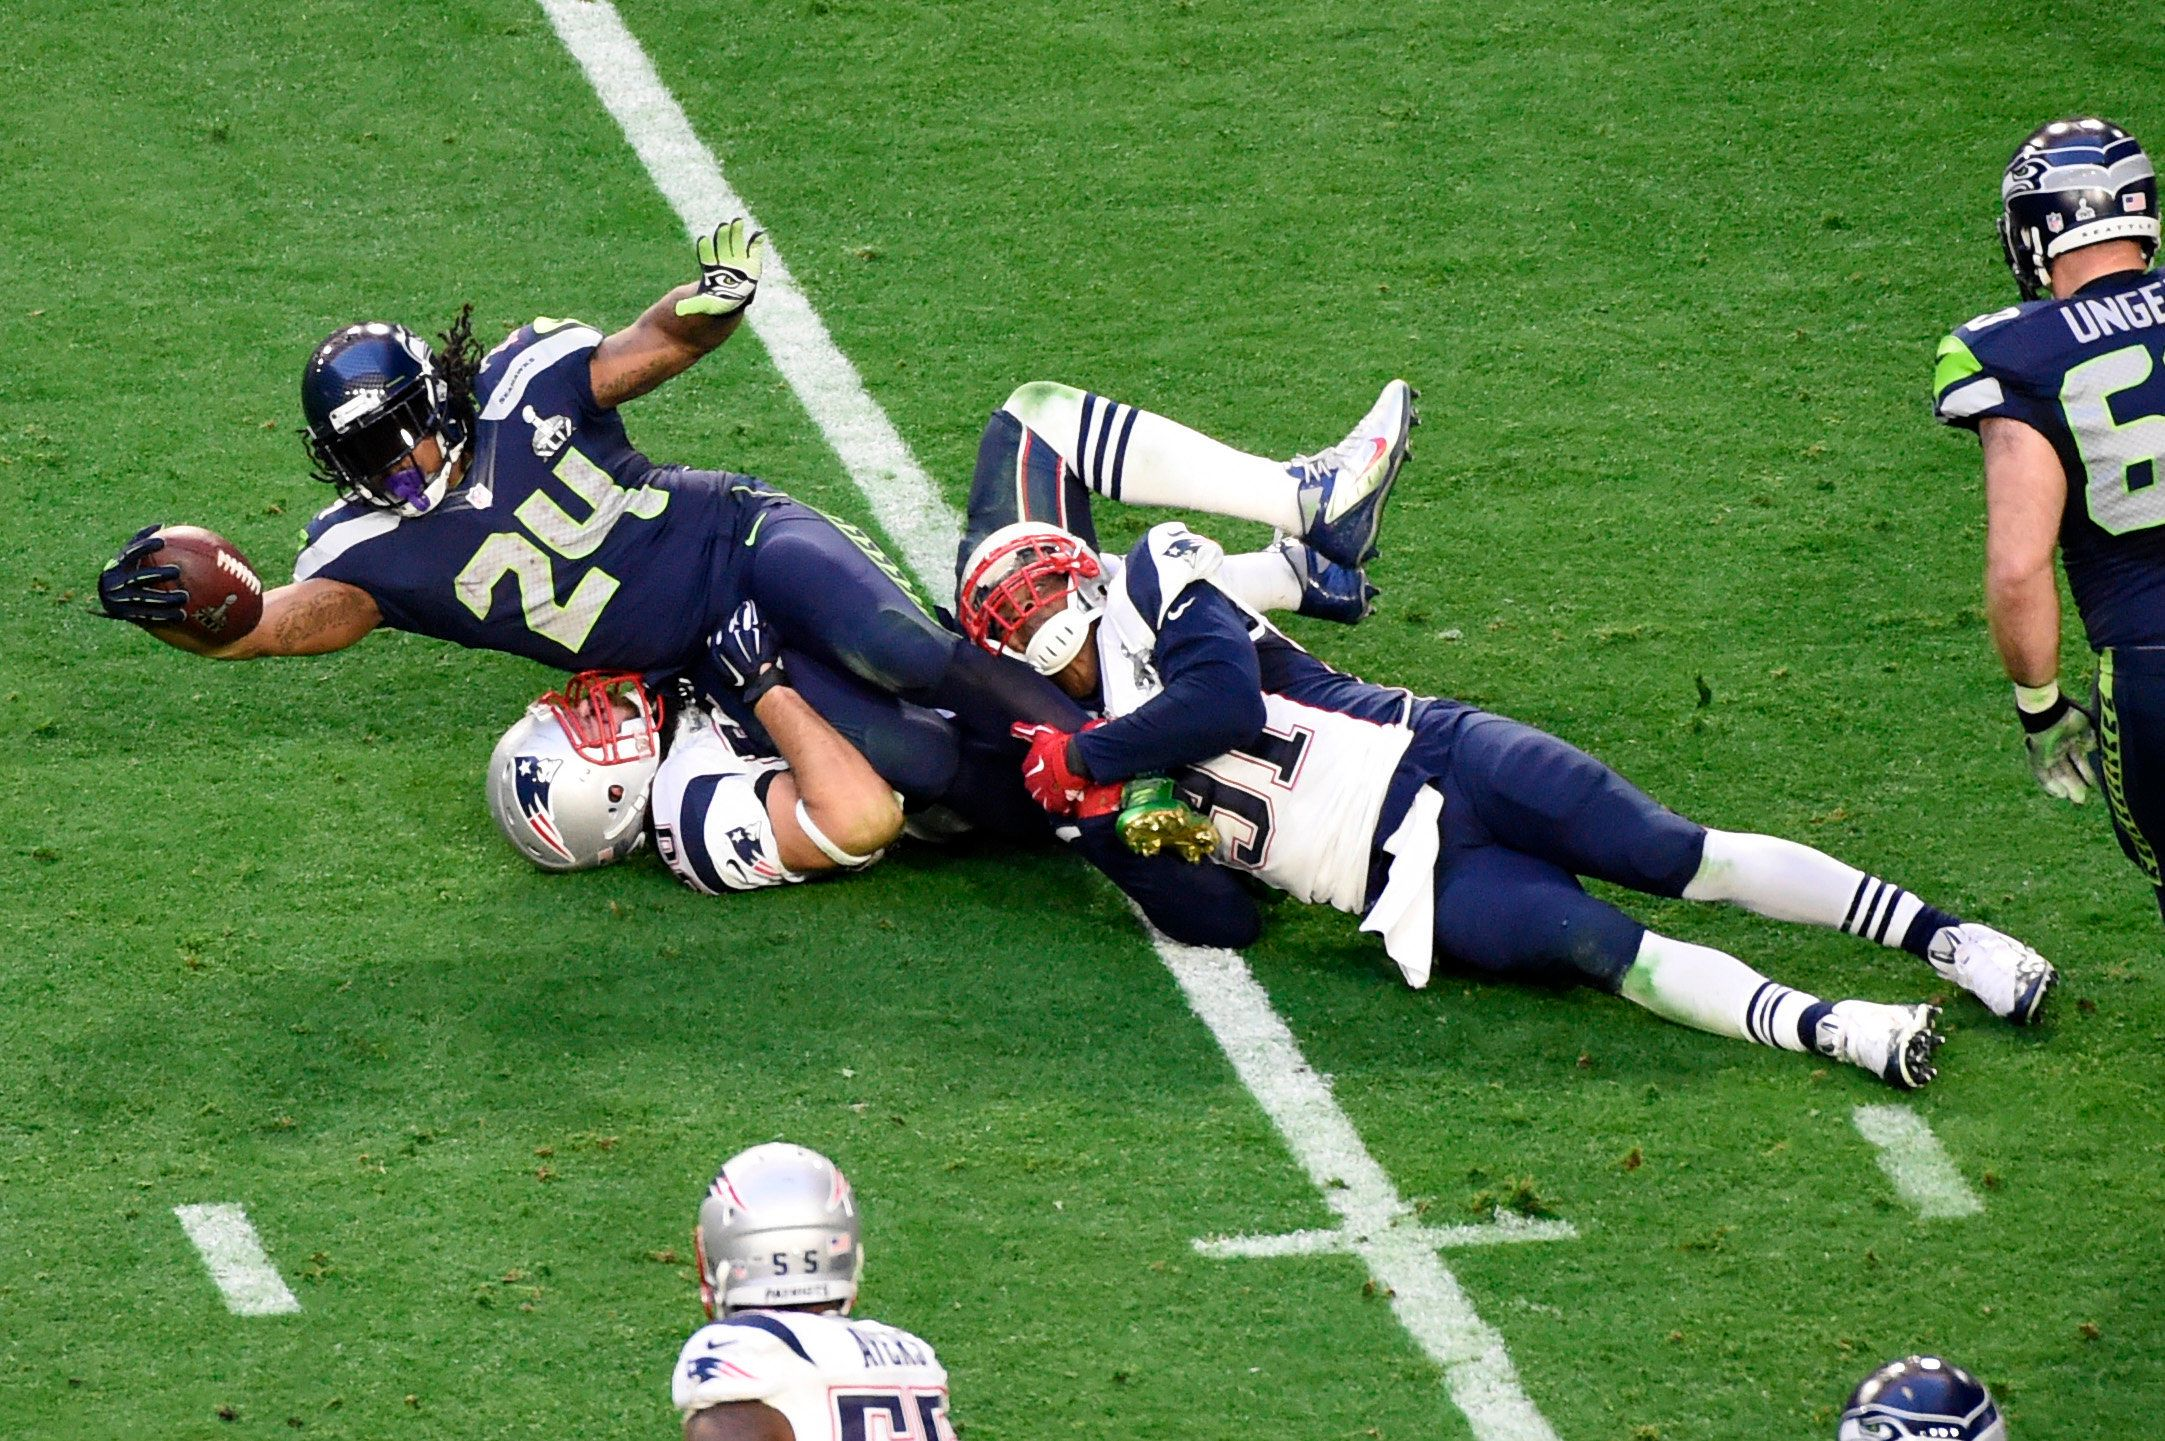 Feb 1, 2015; Glendale, AZ, USA; Seattle Seahawks running back Marshawn Lynch (24) runs the ball against New England Patriots defensive end Rob Ninkovich (50) and New England Patriots outside linebacker Jamie Collins (91) in Super Bowl XLIX at University of Phoenix Stadium. Mandatory Credit: Richard Mackson-USA TODAY Sports